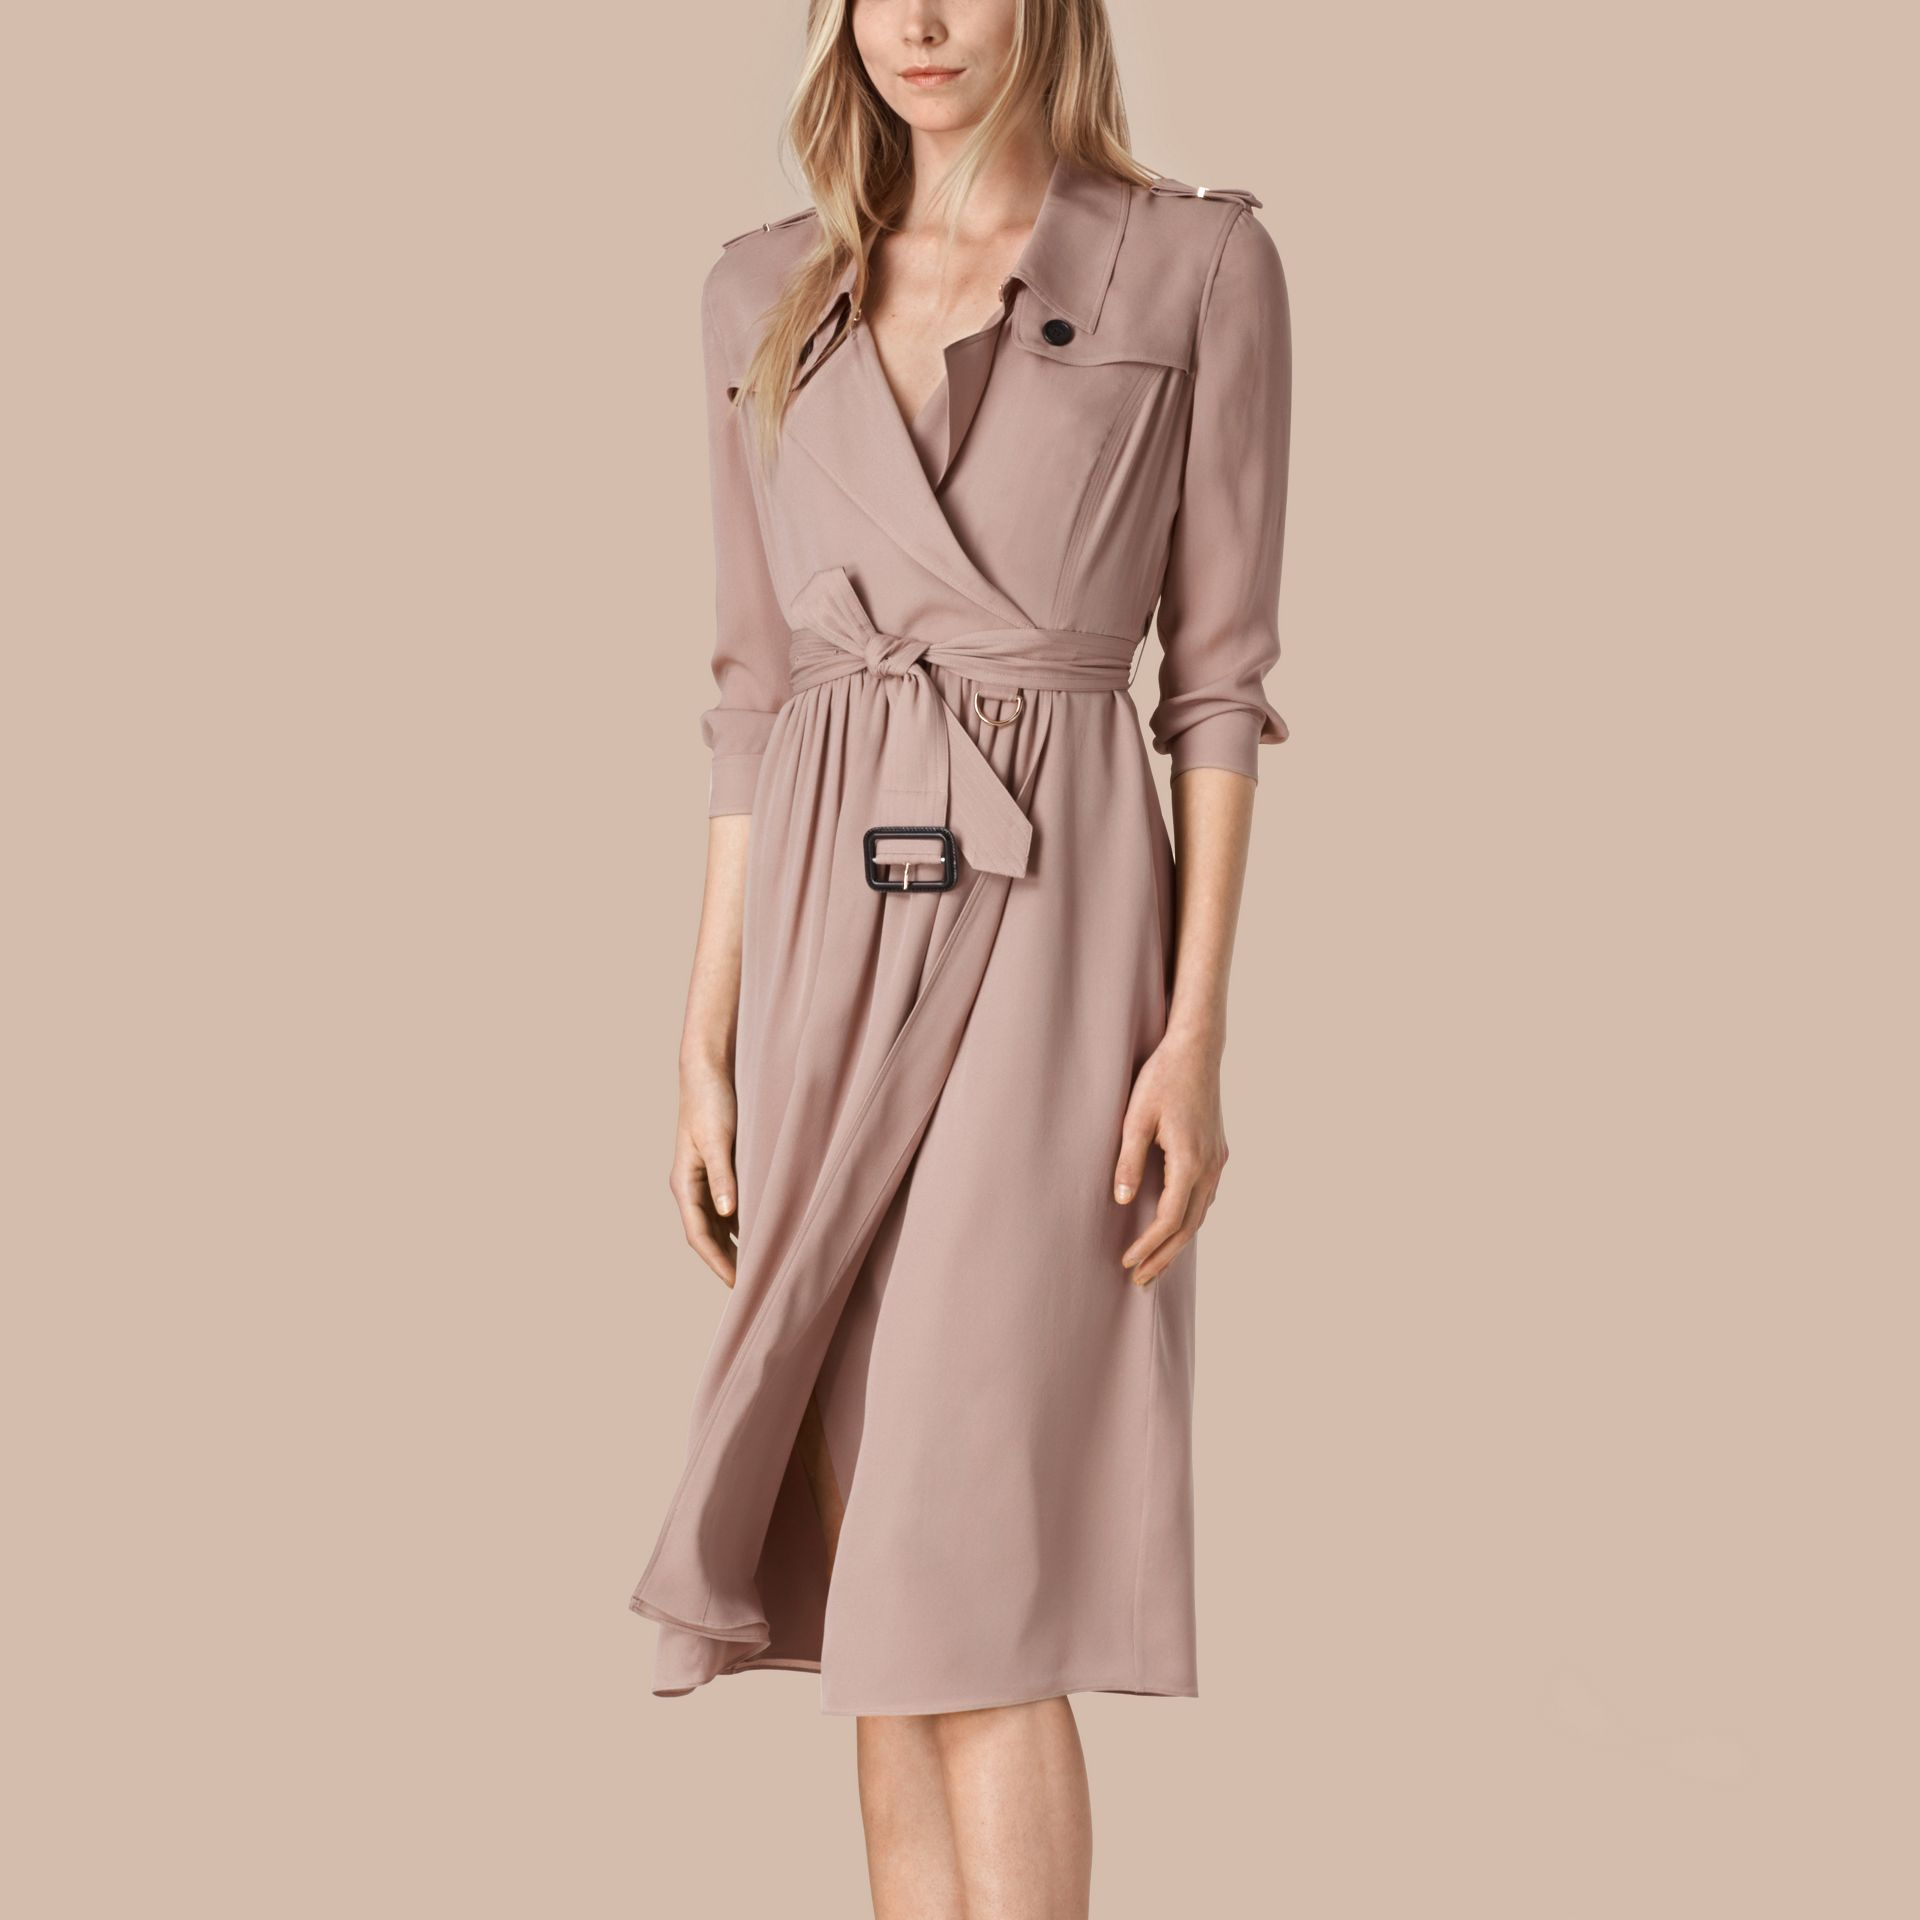 Nude Silk Trench Dress Nude - gallery image 1